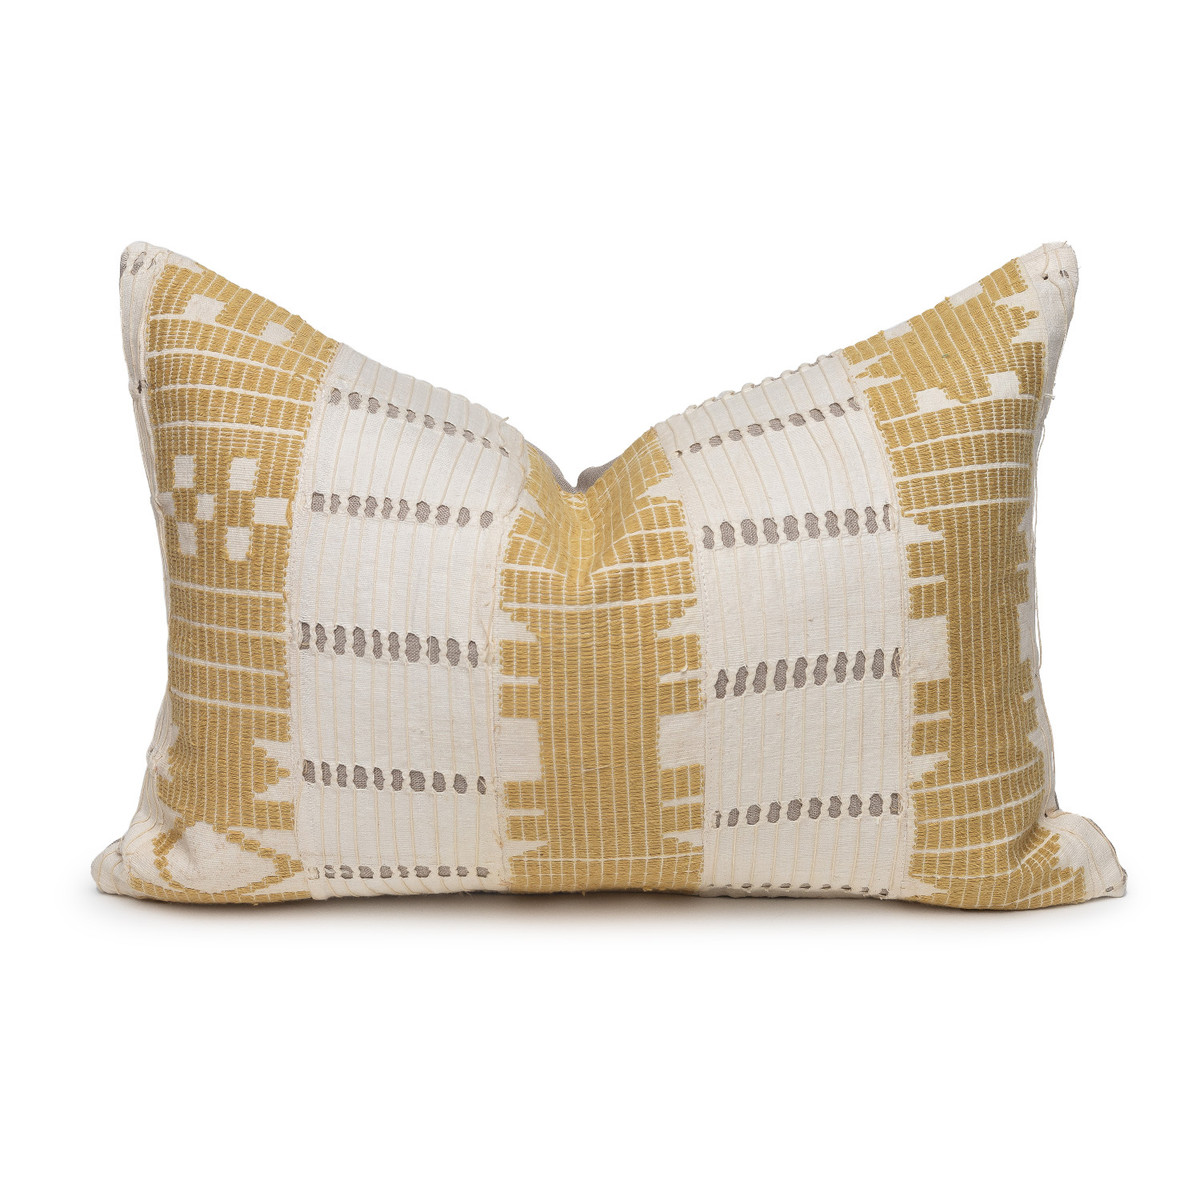 Alaia Lumbar Luxe Vintage Pillow with African Aso Oke Textiles- 1420- Front View